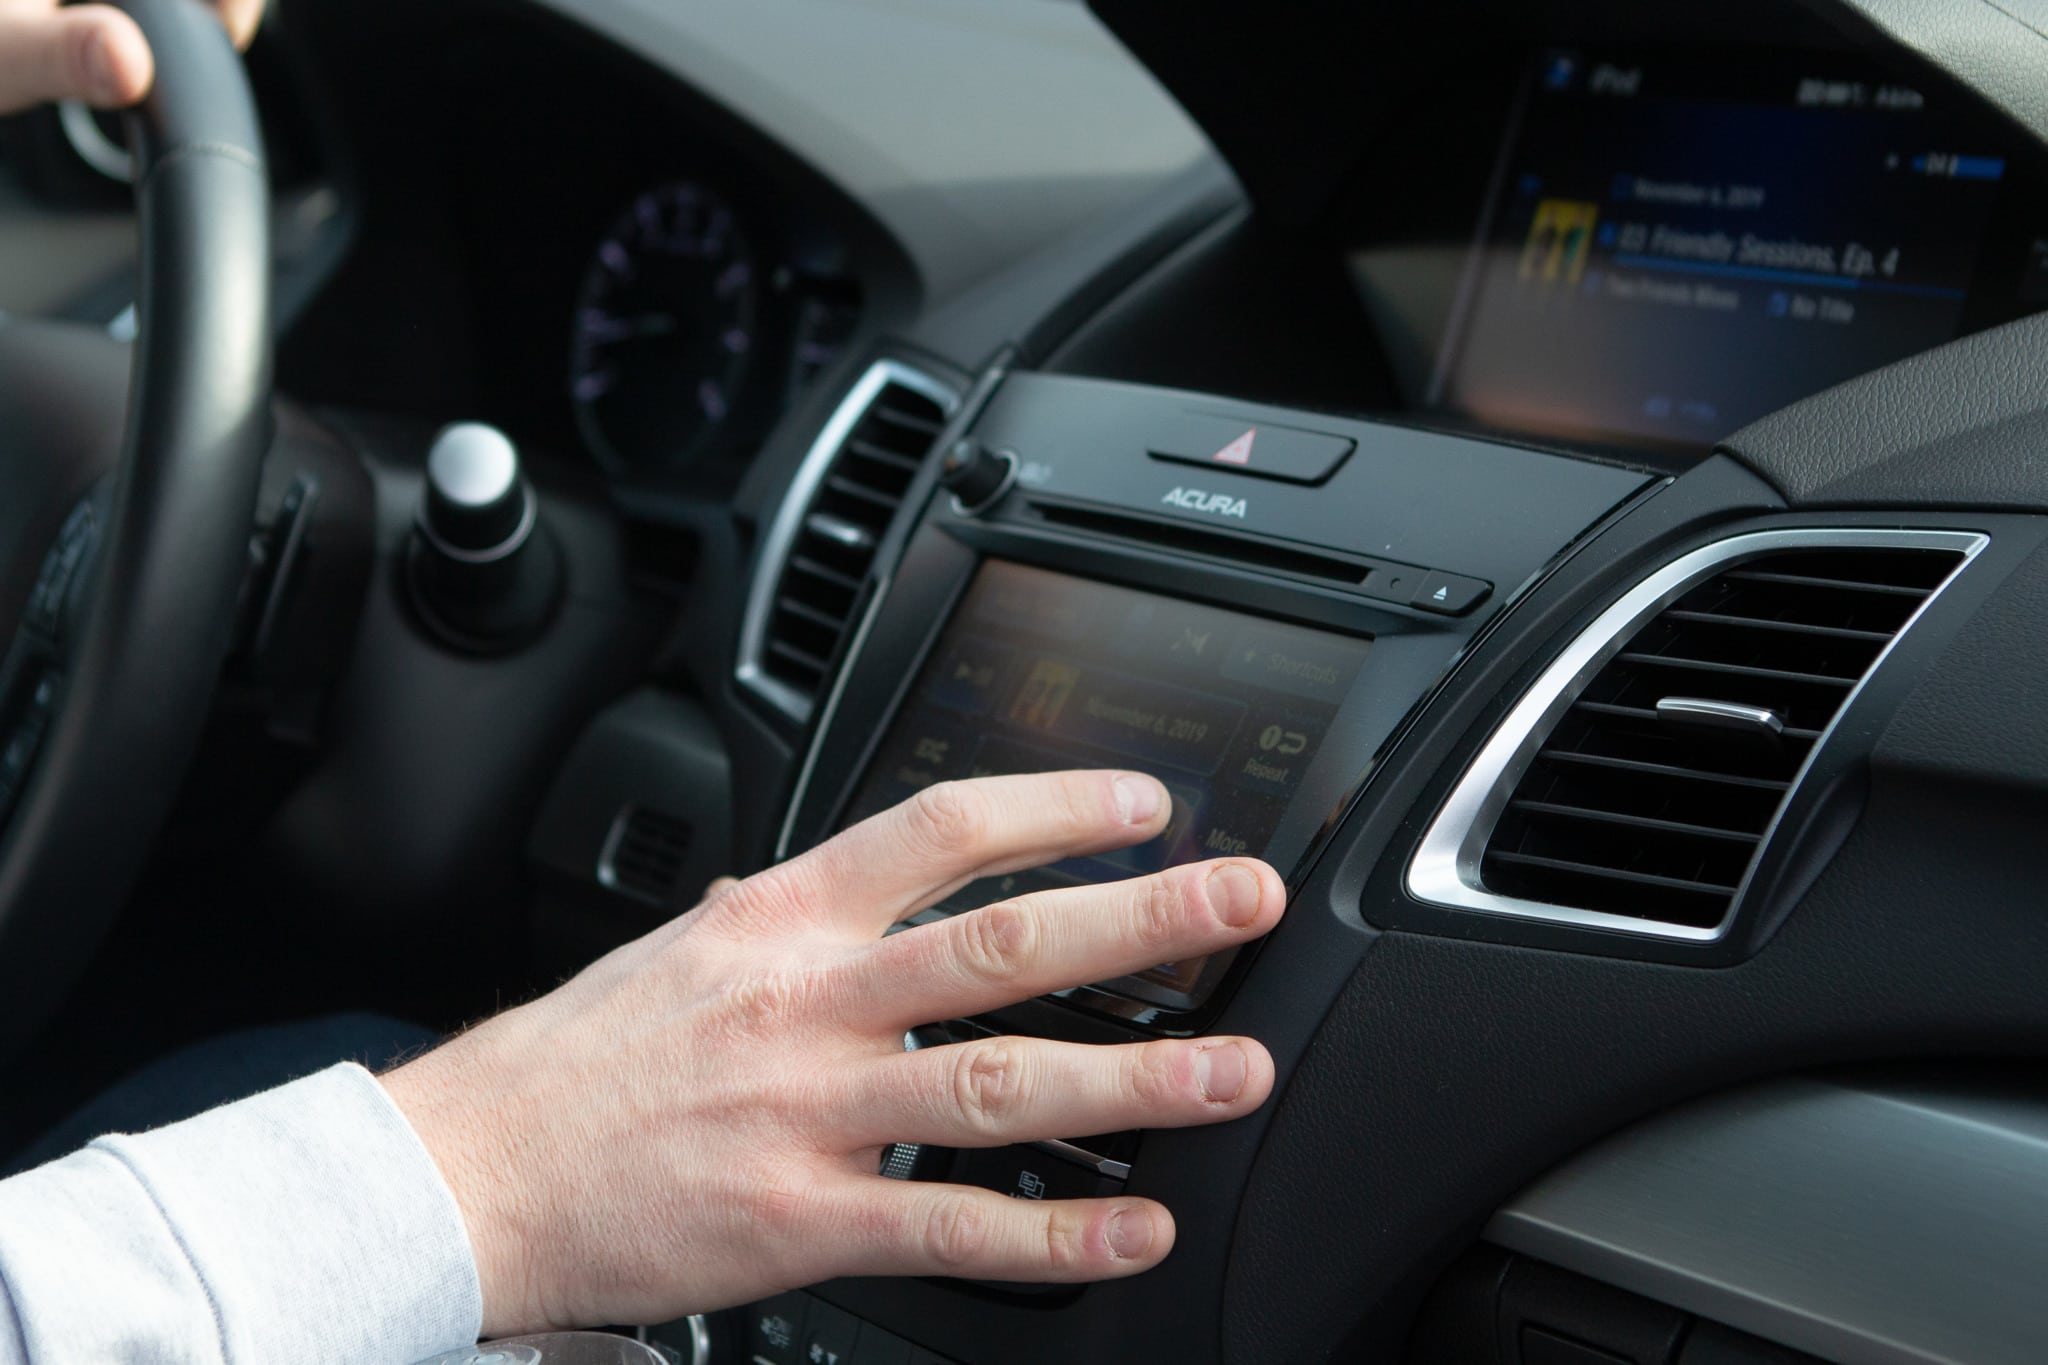 Touch-screen technology on the Acura RDX